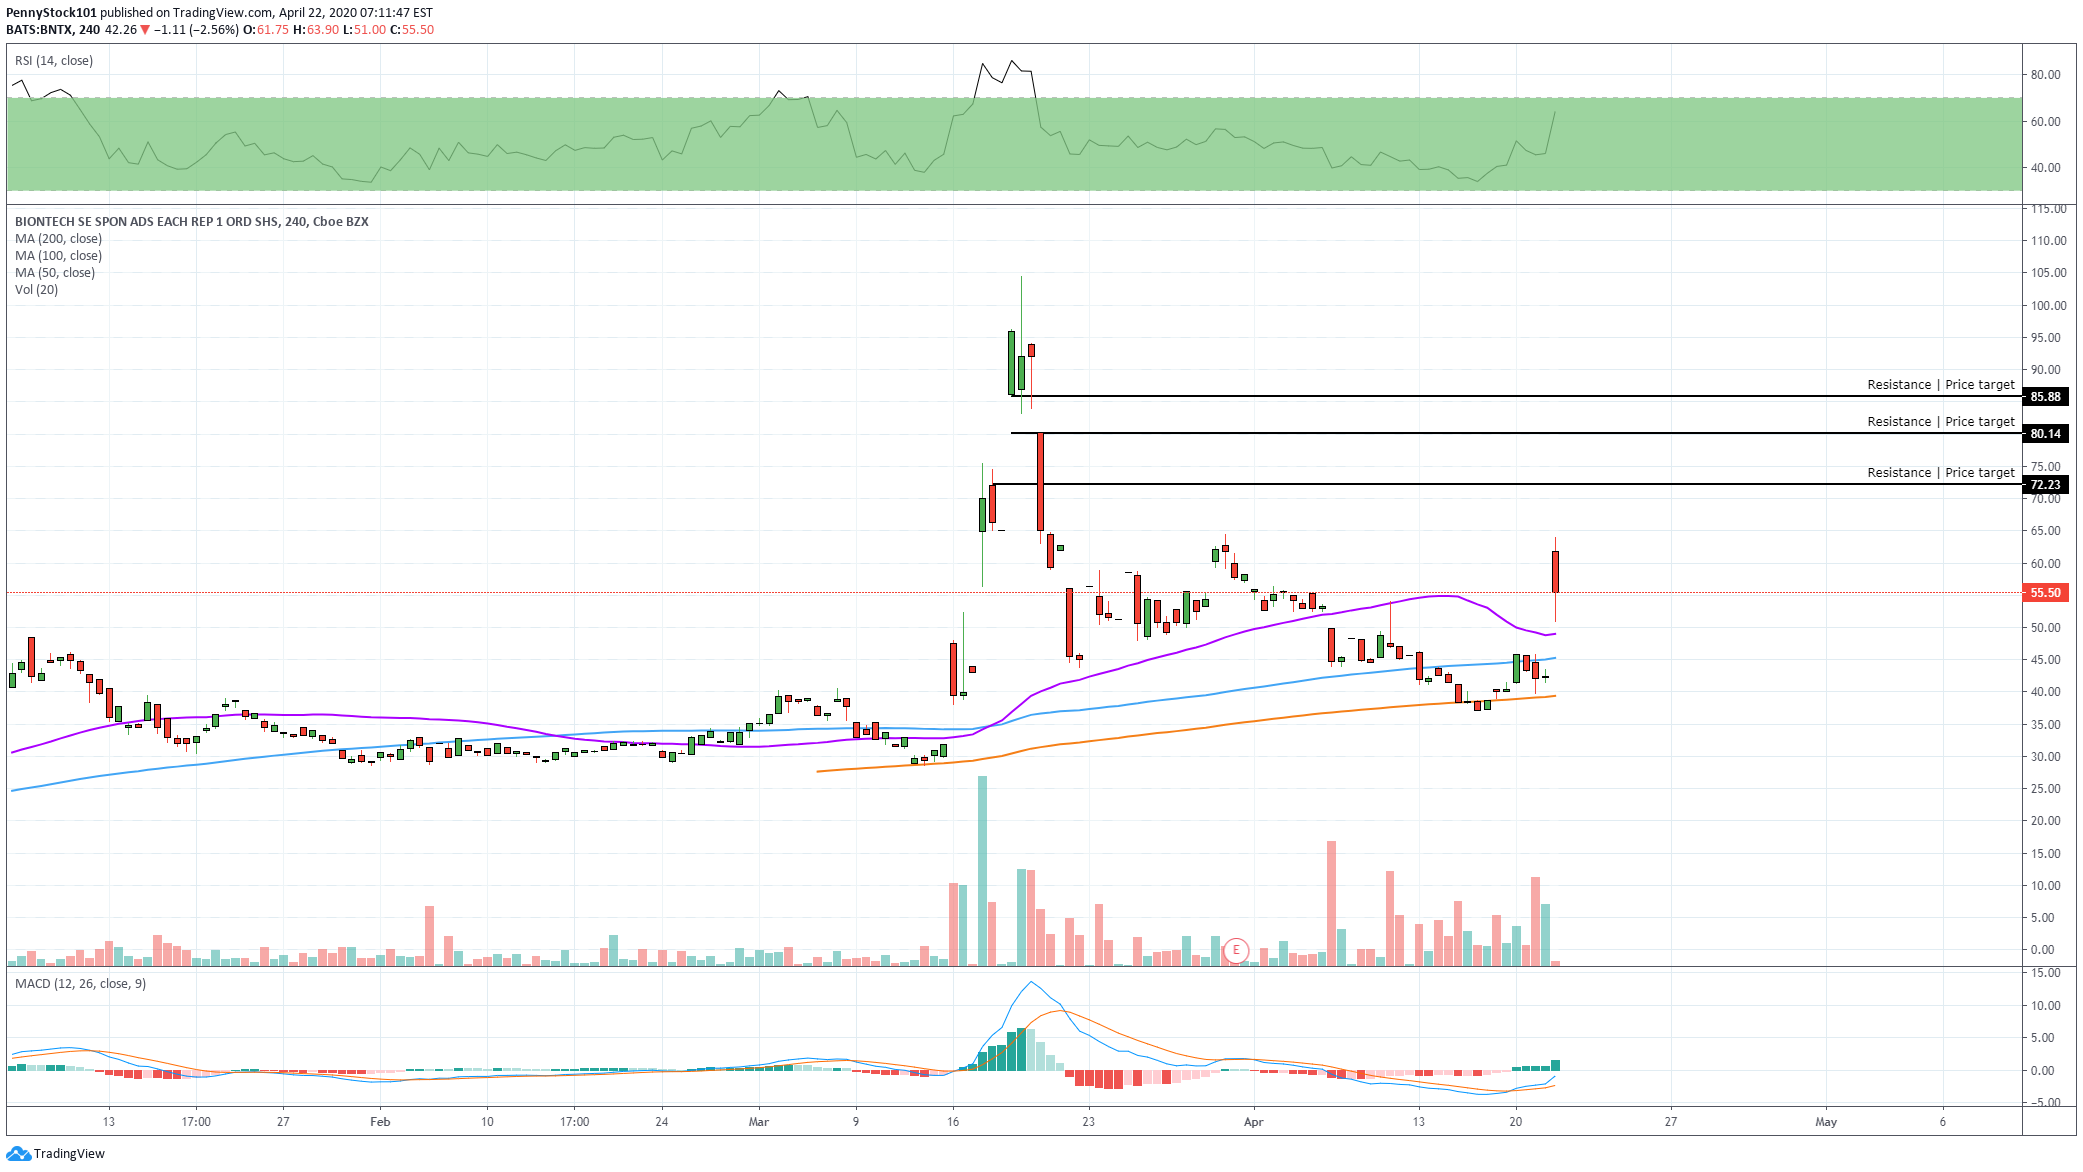 Biontech First To Trial In Europe For Covid 19 Vaccine For Nasdaq Bntx By Pennystock101 Tradingview